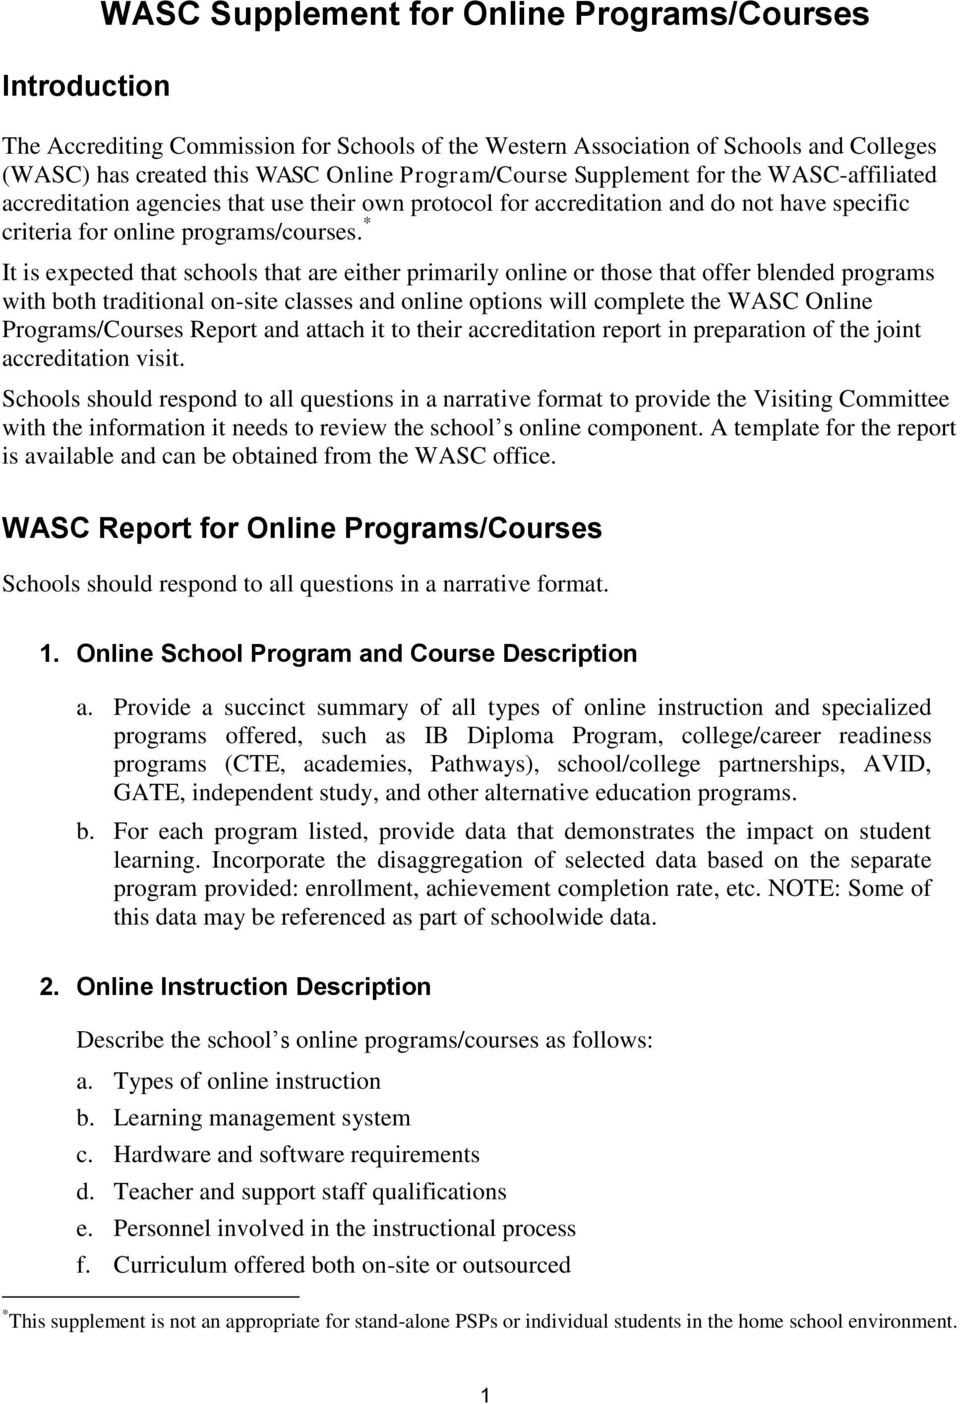 * It is expected that schools that are either primarily online or those that offer blended programs with both traditional on-site classes and online options will complete the WASC Online